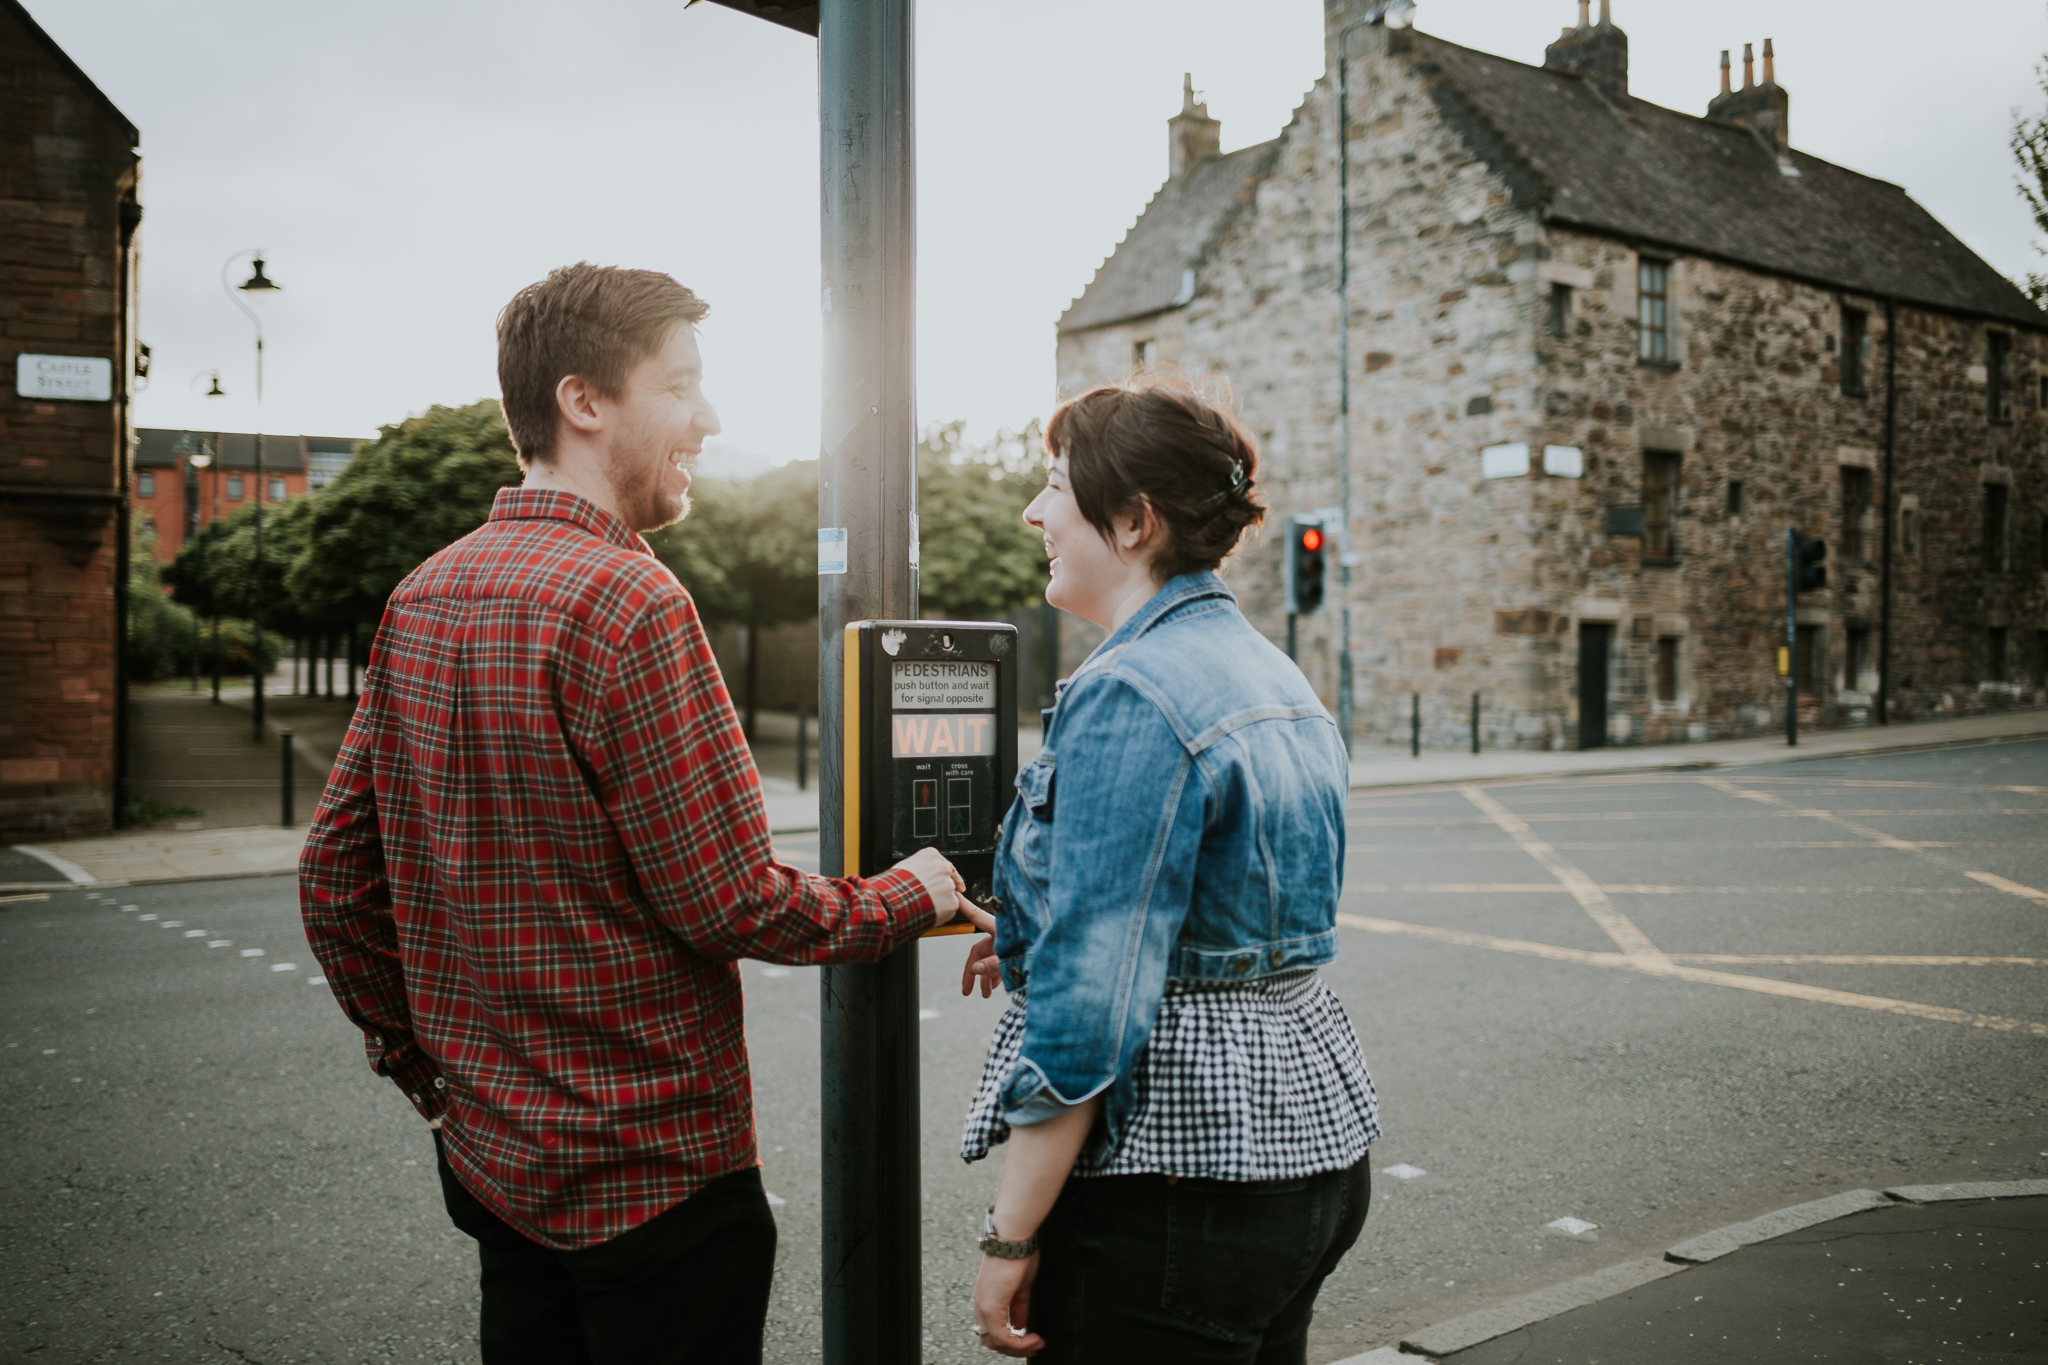 Glasgow wedding and engagement photographer | In the Name of Love Photography